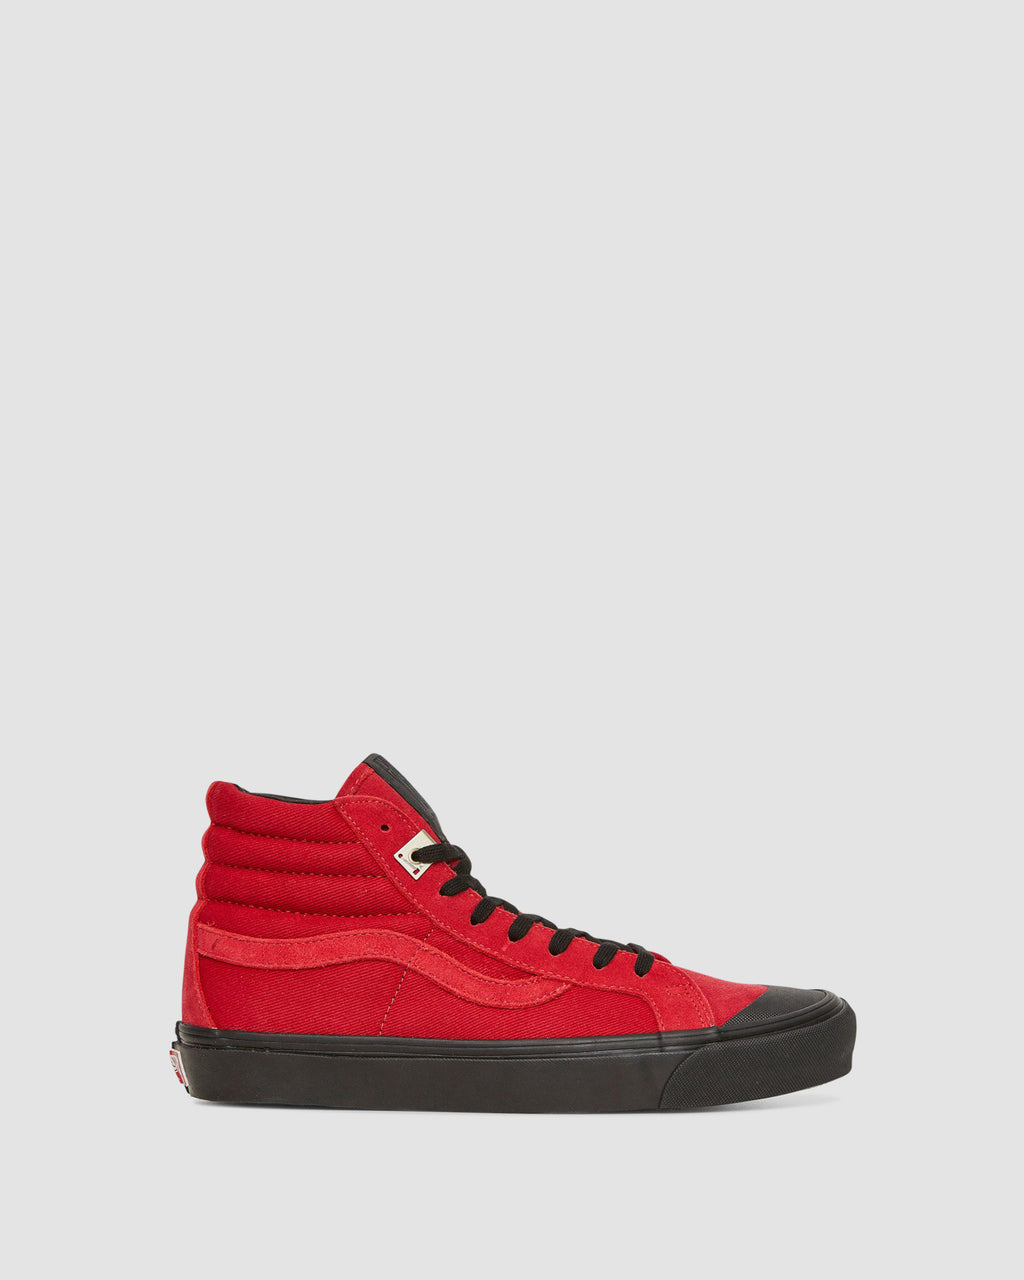 VANS OG 138 SK8 HIGH CHILI PEPPER